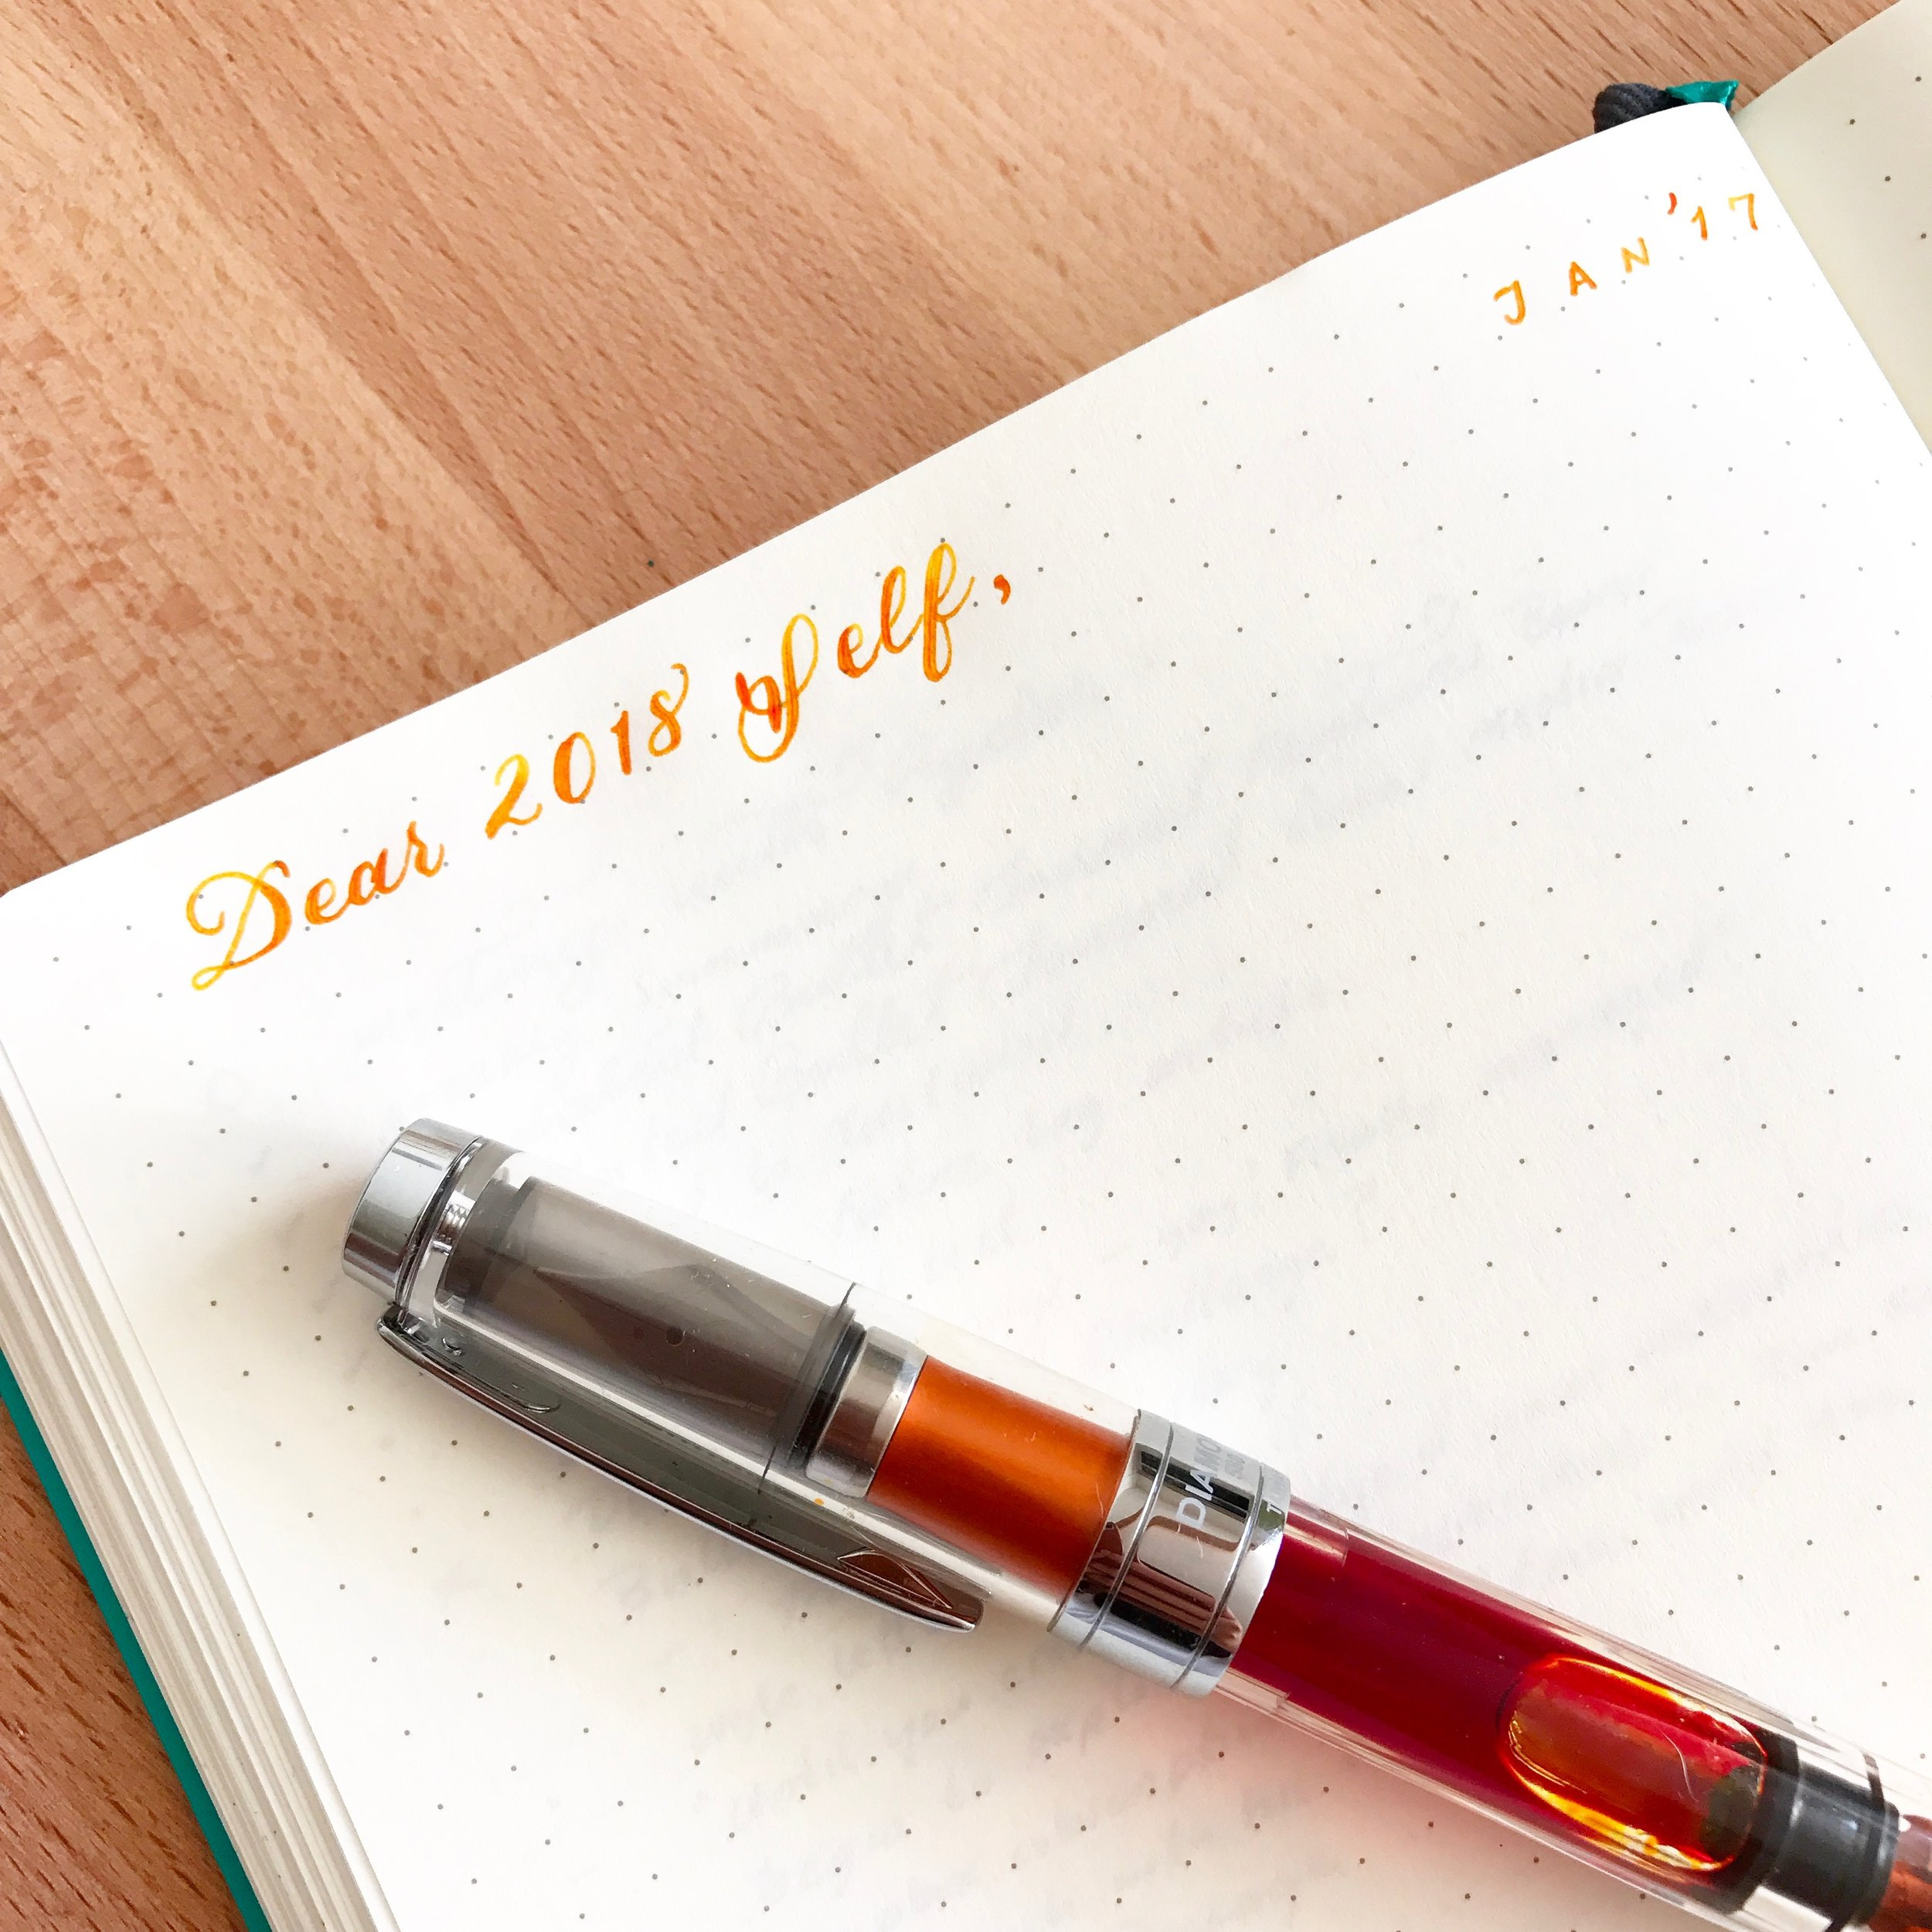 Write a letter to yourself in your Bullet Journal to capture the moment.